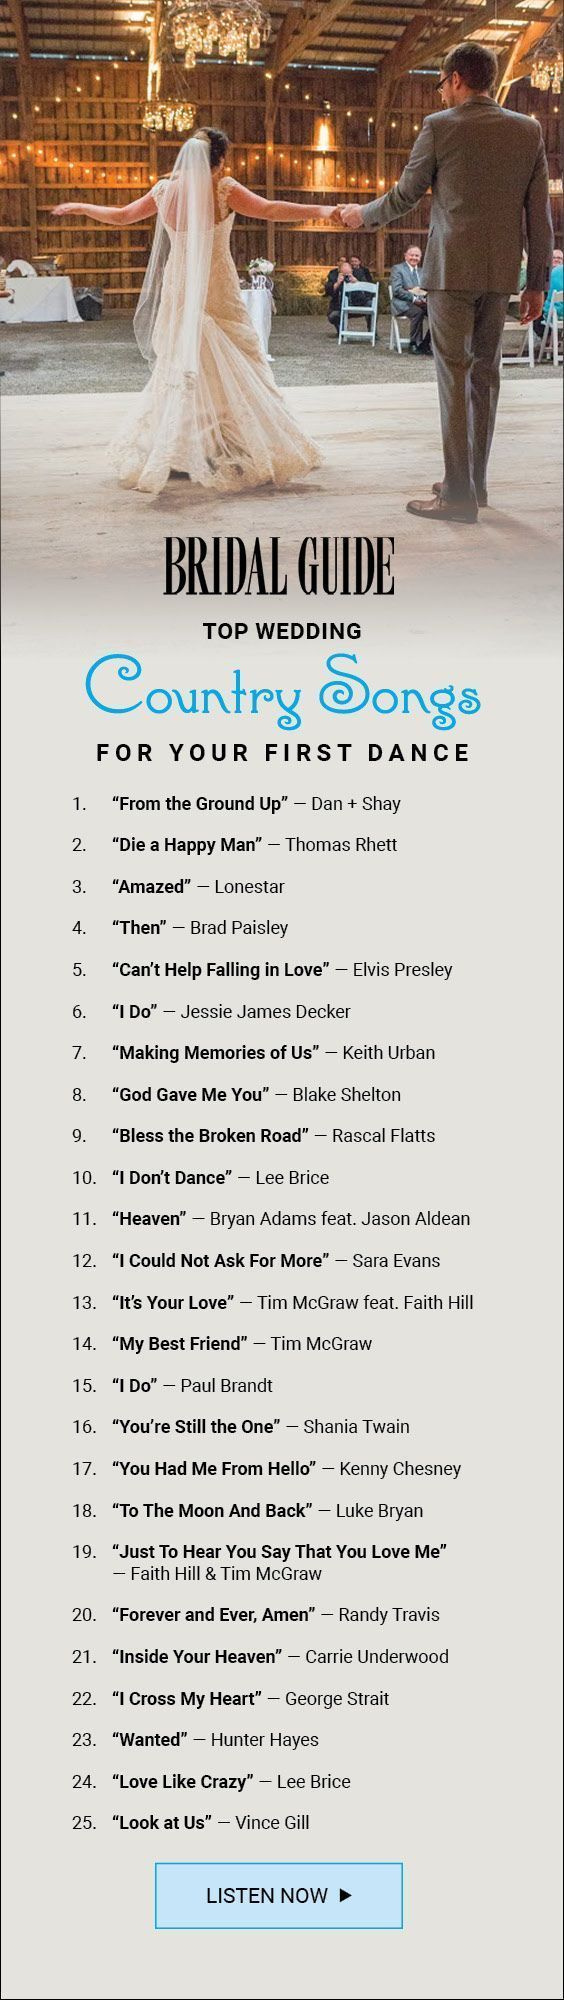 Here are the top country songs for your first dance as a married couple! #engagementrings